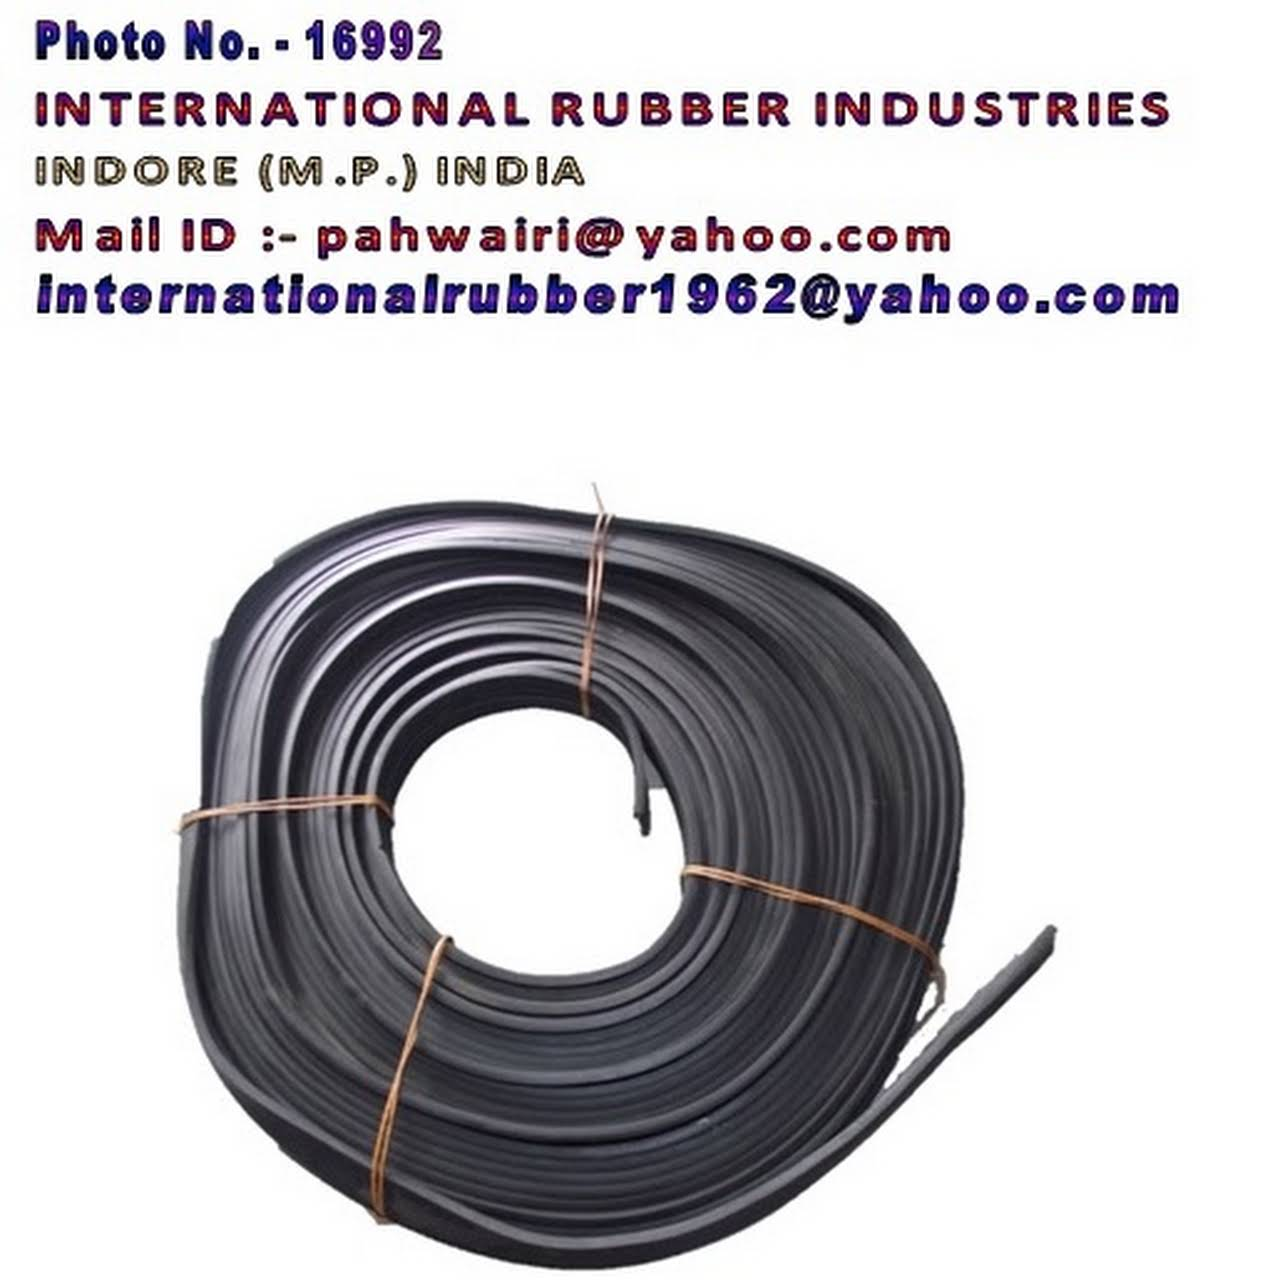 International Rubber Industries - Rubber Products Manufacturer